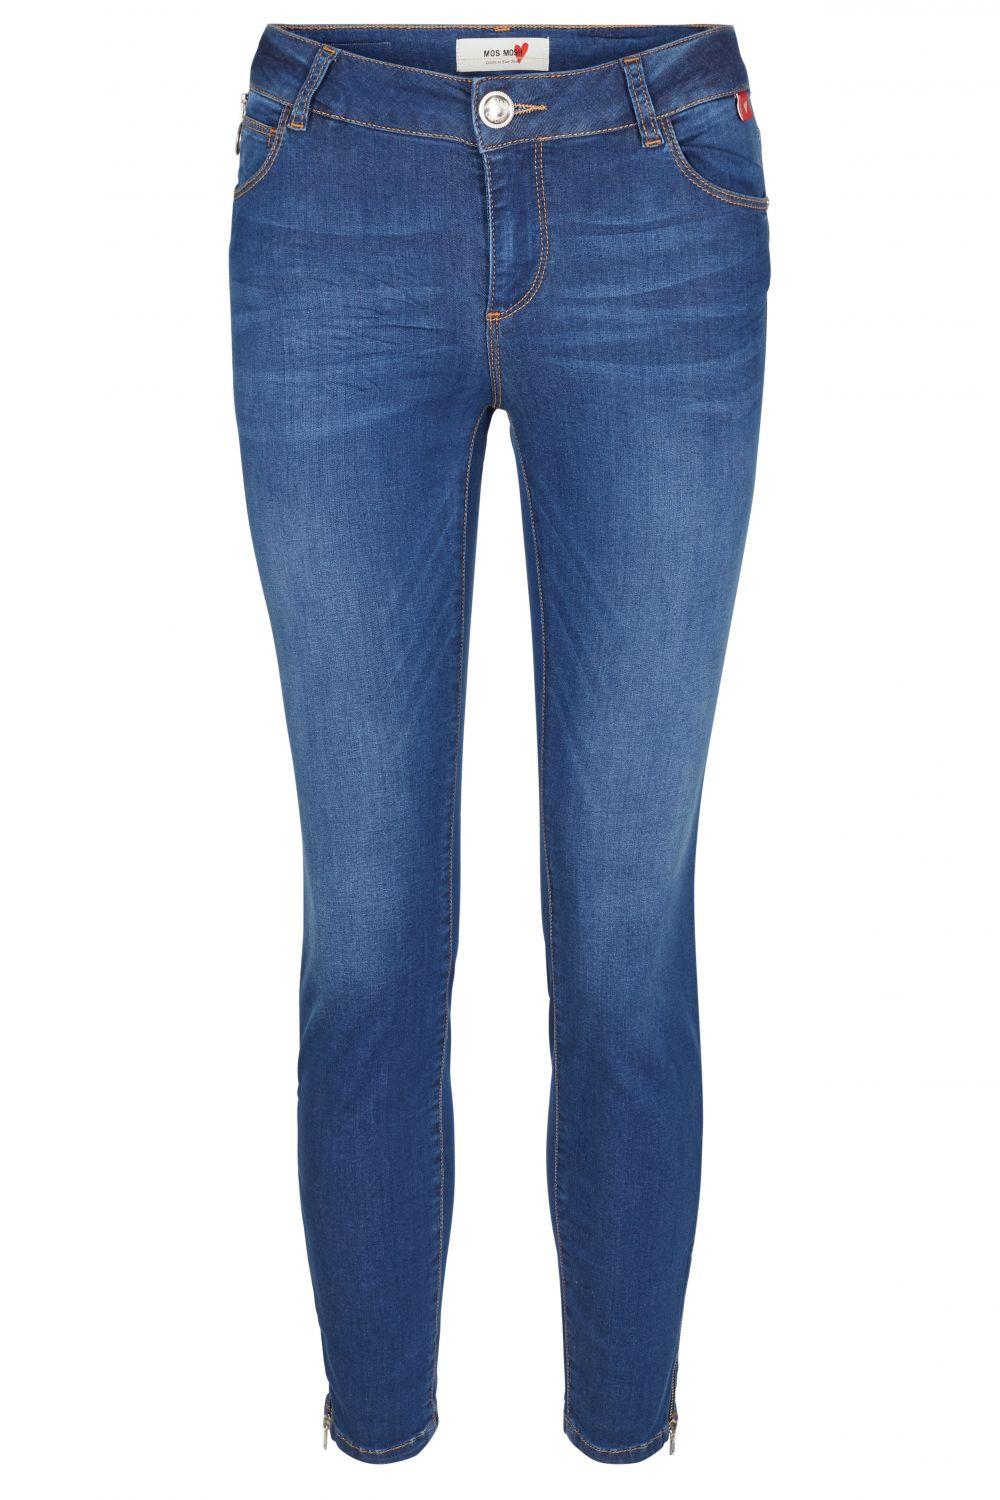 Mos Mosh Damen Jeans Victoria Sateen Blue Denim